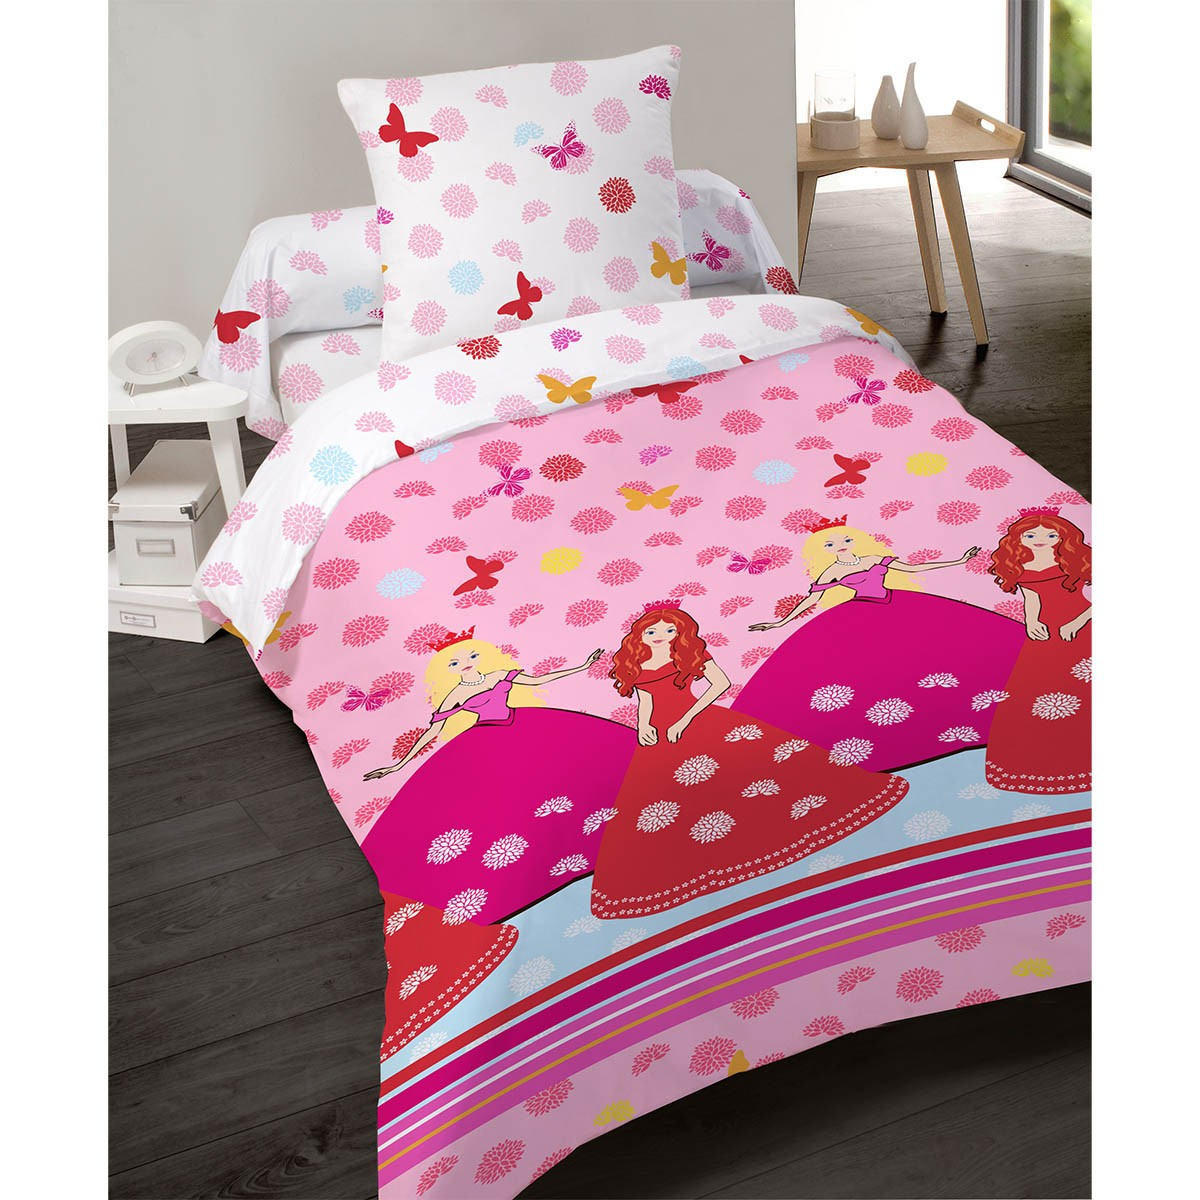 housse de couette 140x200cm princesse rose en polyester. Black Bedroom Furniture Sets. Home Design Ideas